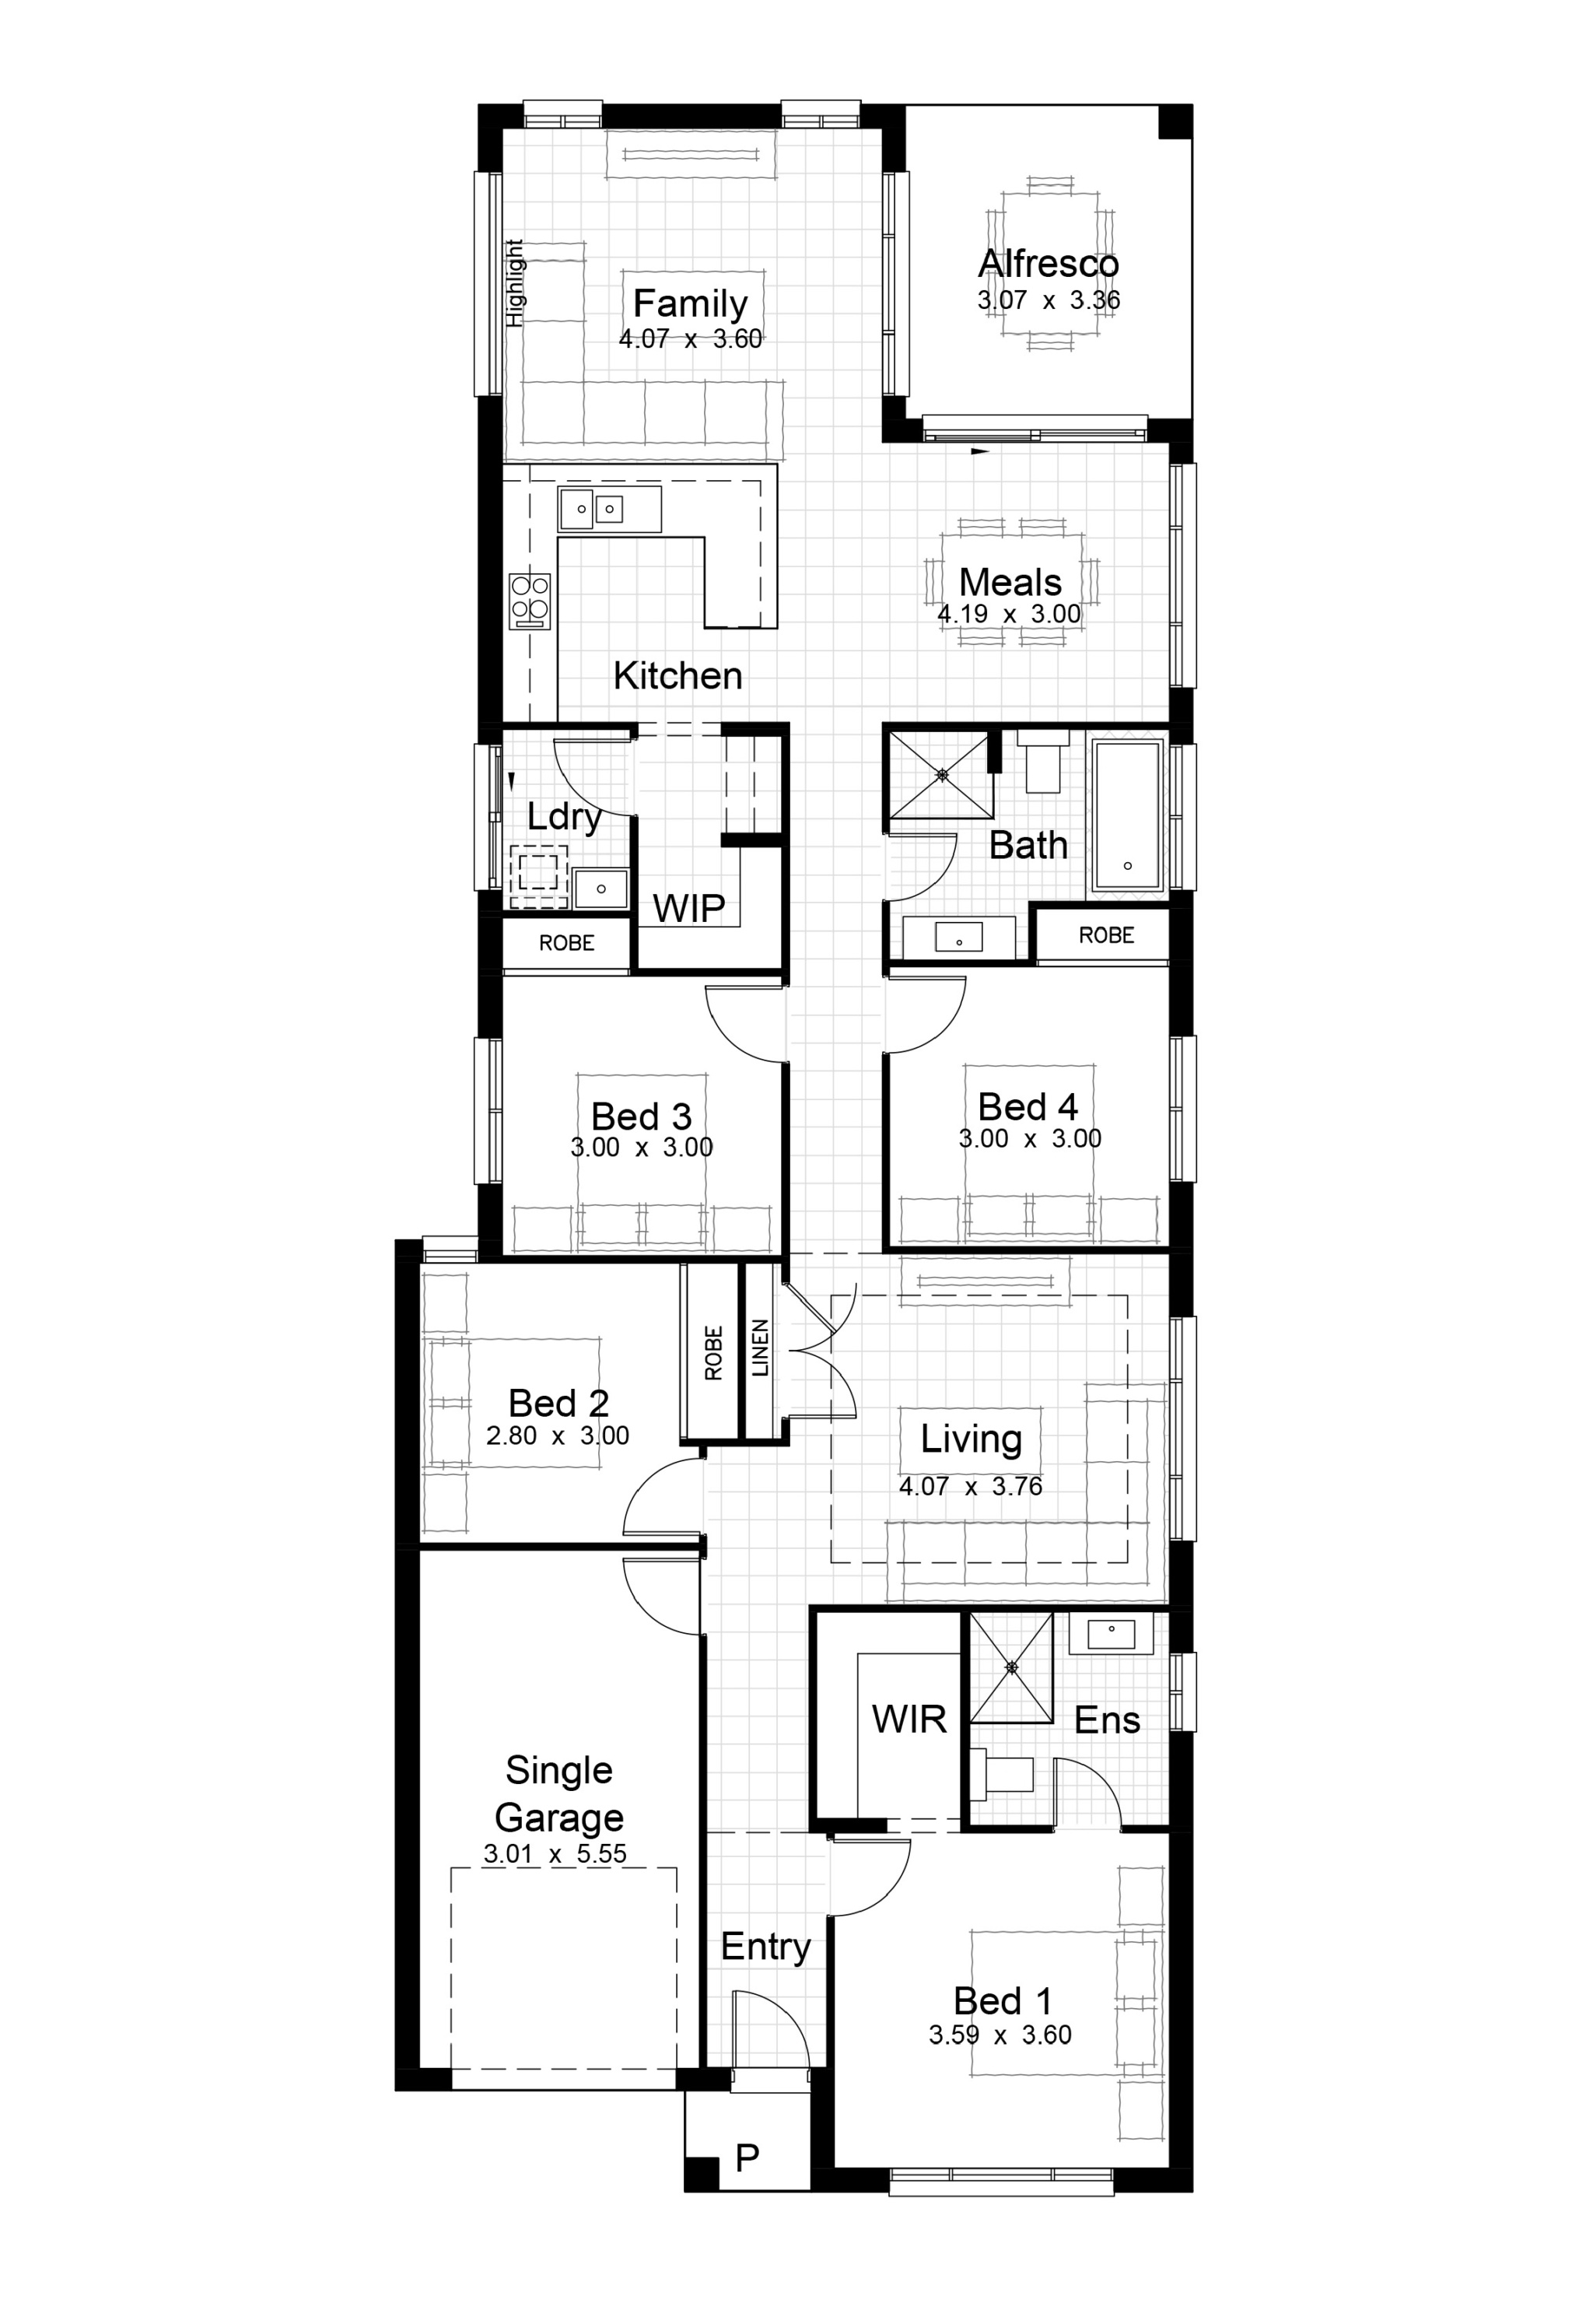 Single Level Plan_Lot 17